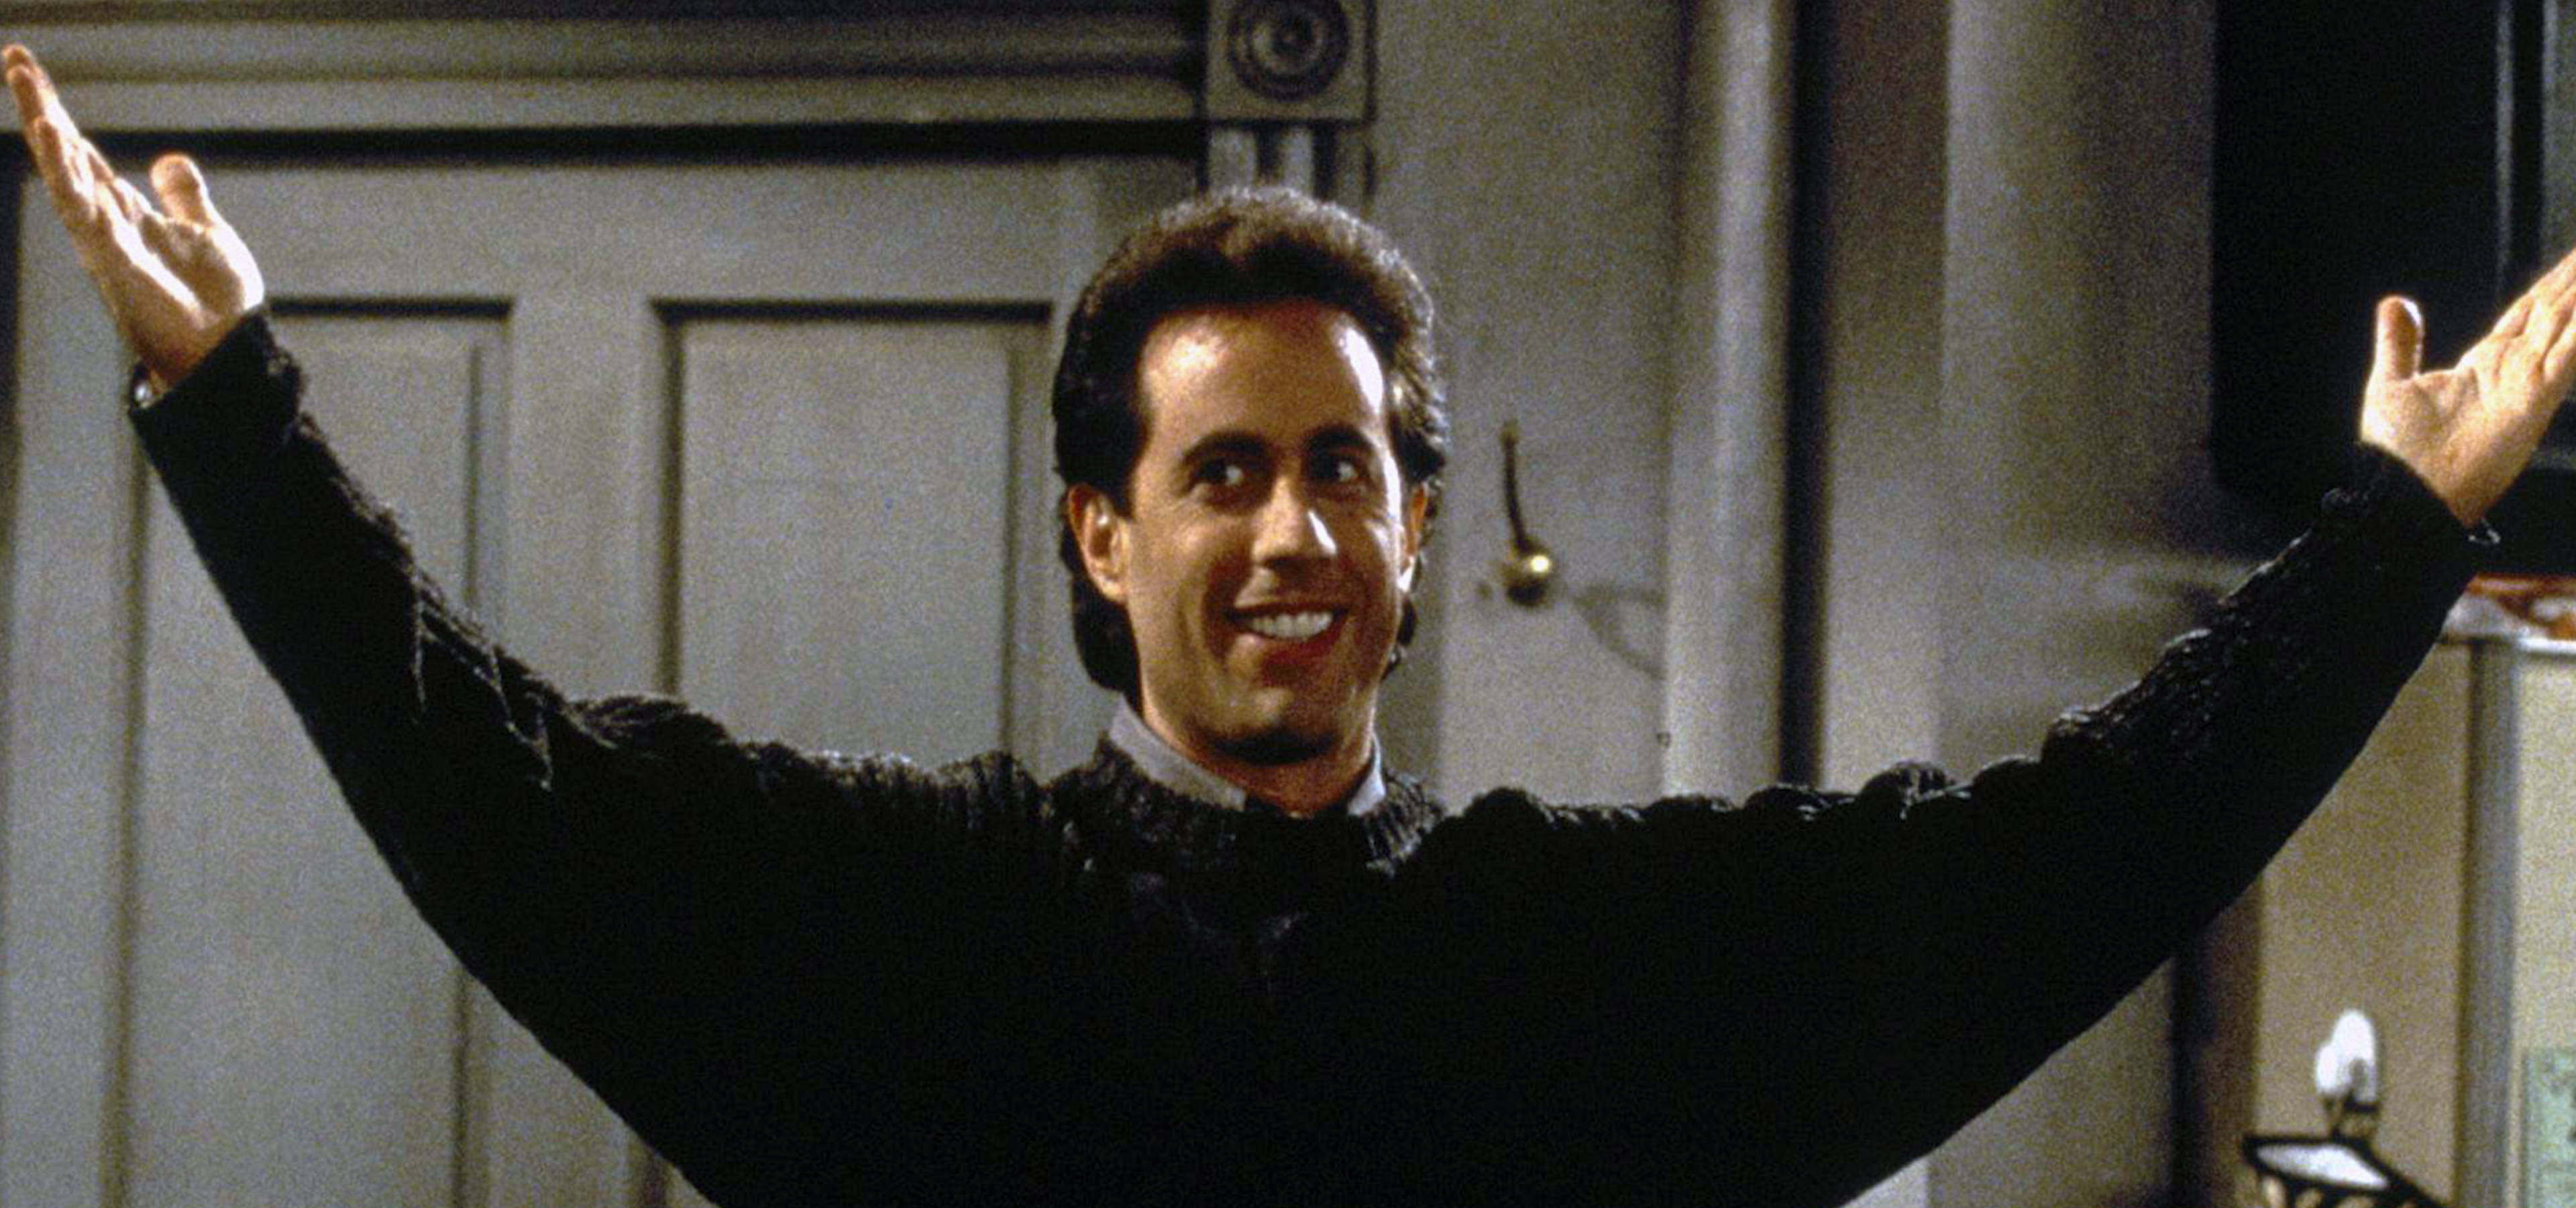 Photo of Seinfeld with open arms